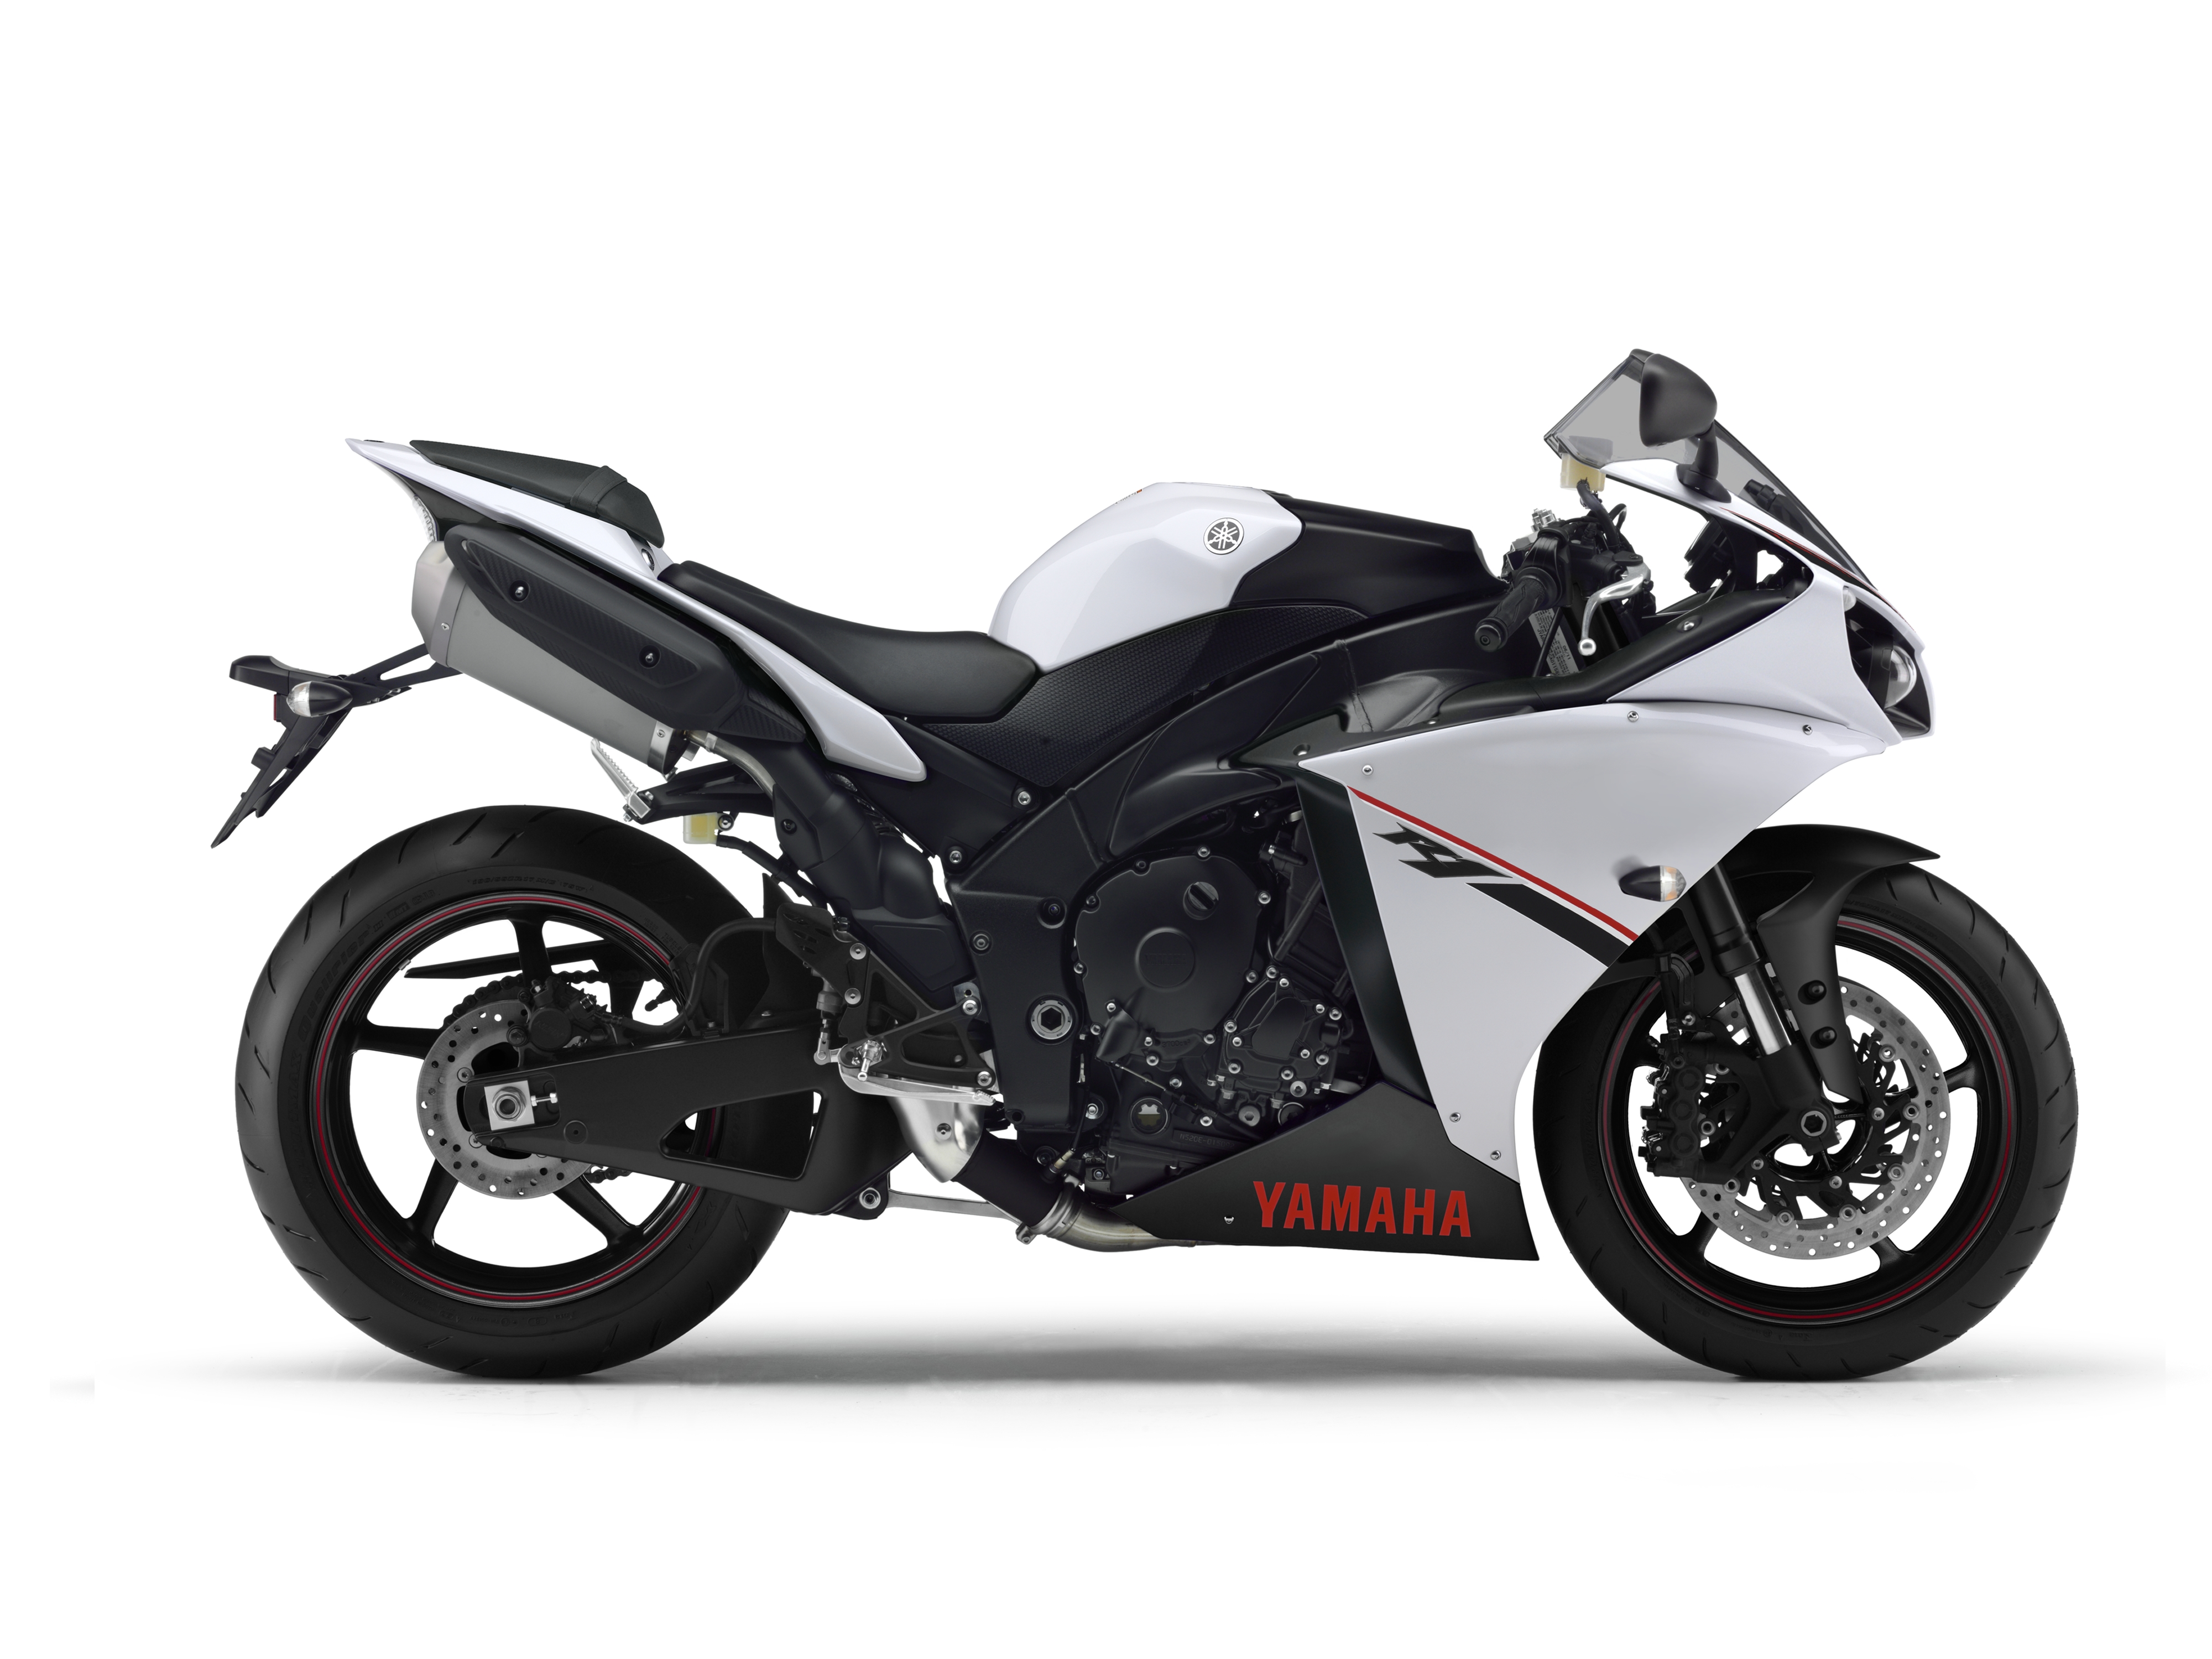 Yamaha YZF-R1 (2012-2014) for sale & price guide | TheBikeMarket